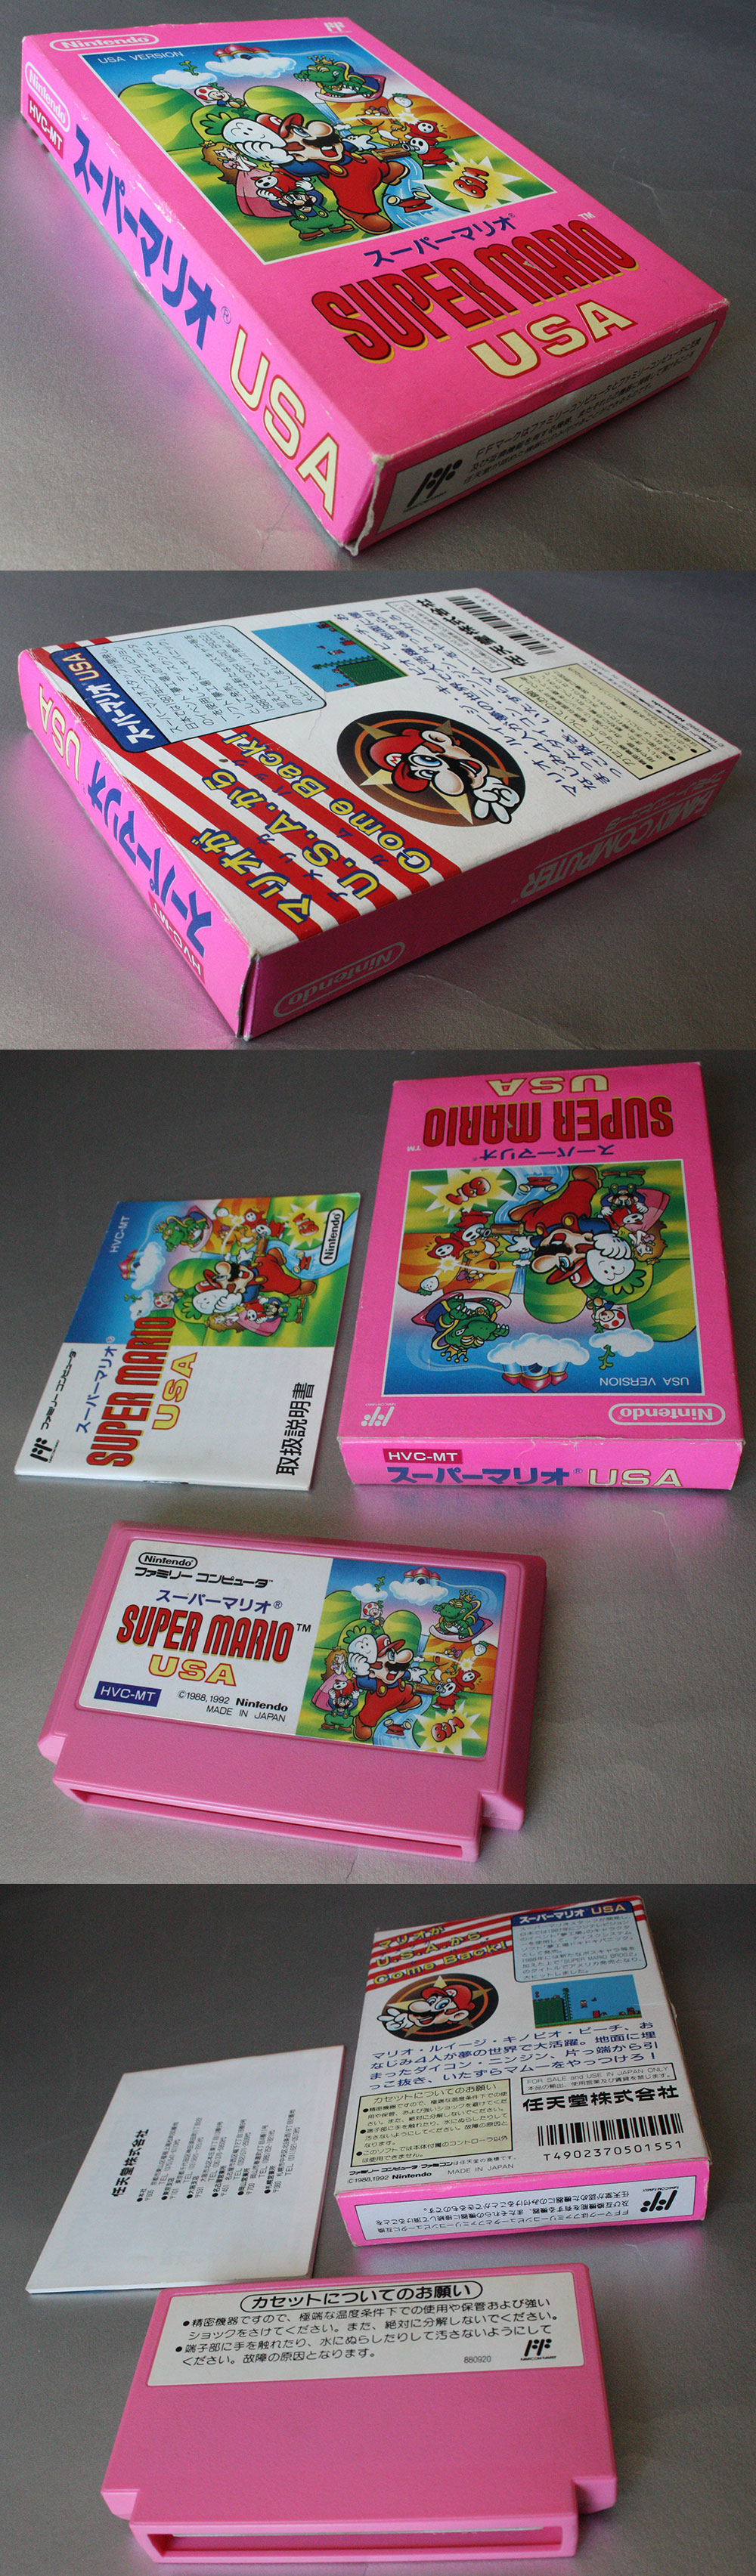 Imported Japanese Console Games > GenkiVideoGames com